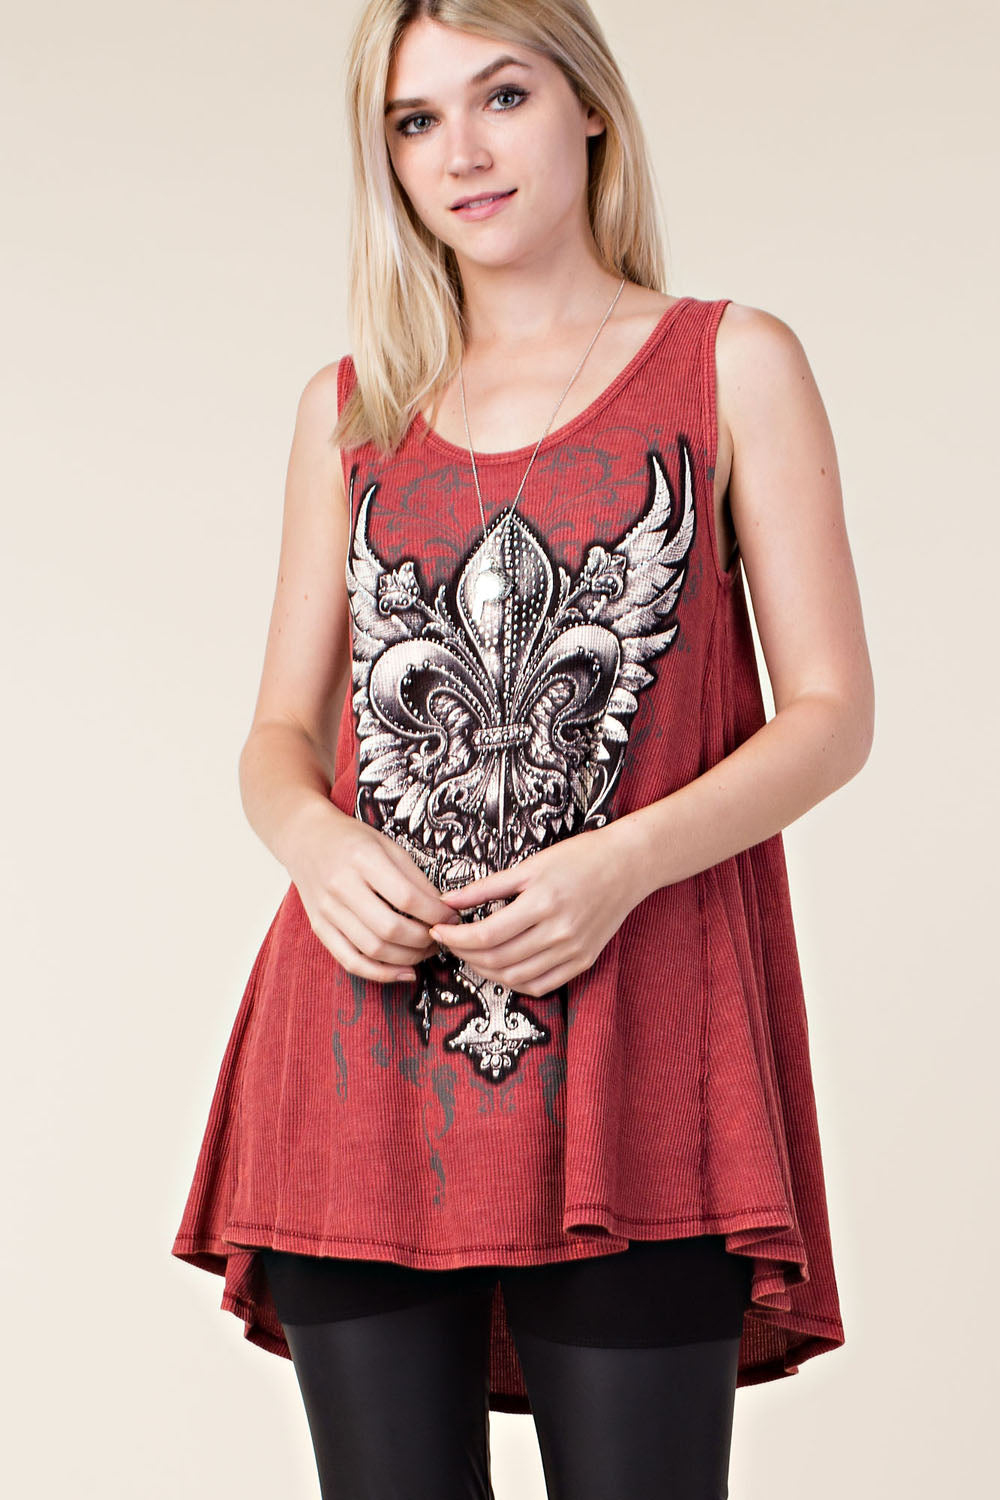 Front view young woman wearing red printed tank tunic top with silver studs and rhinestones